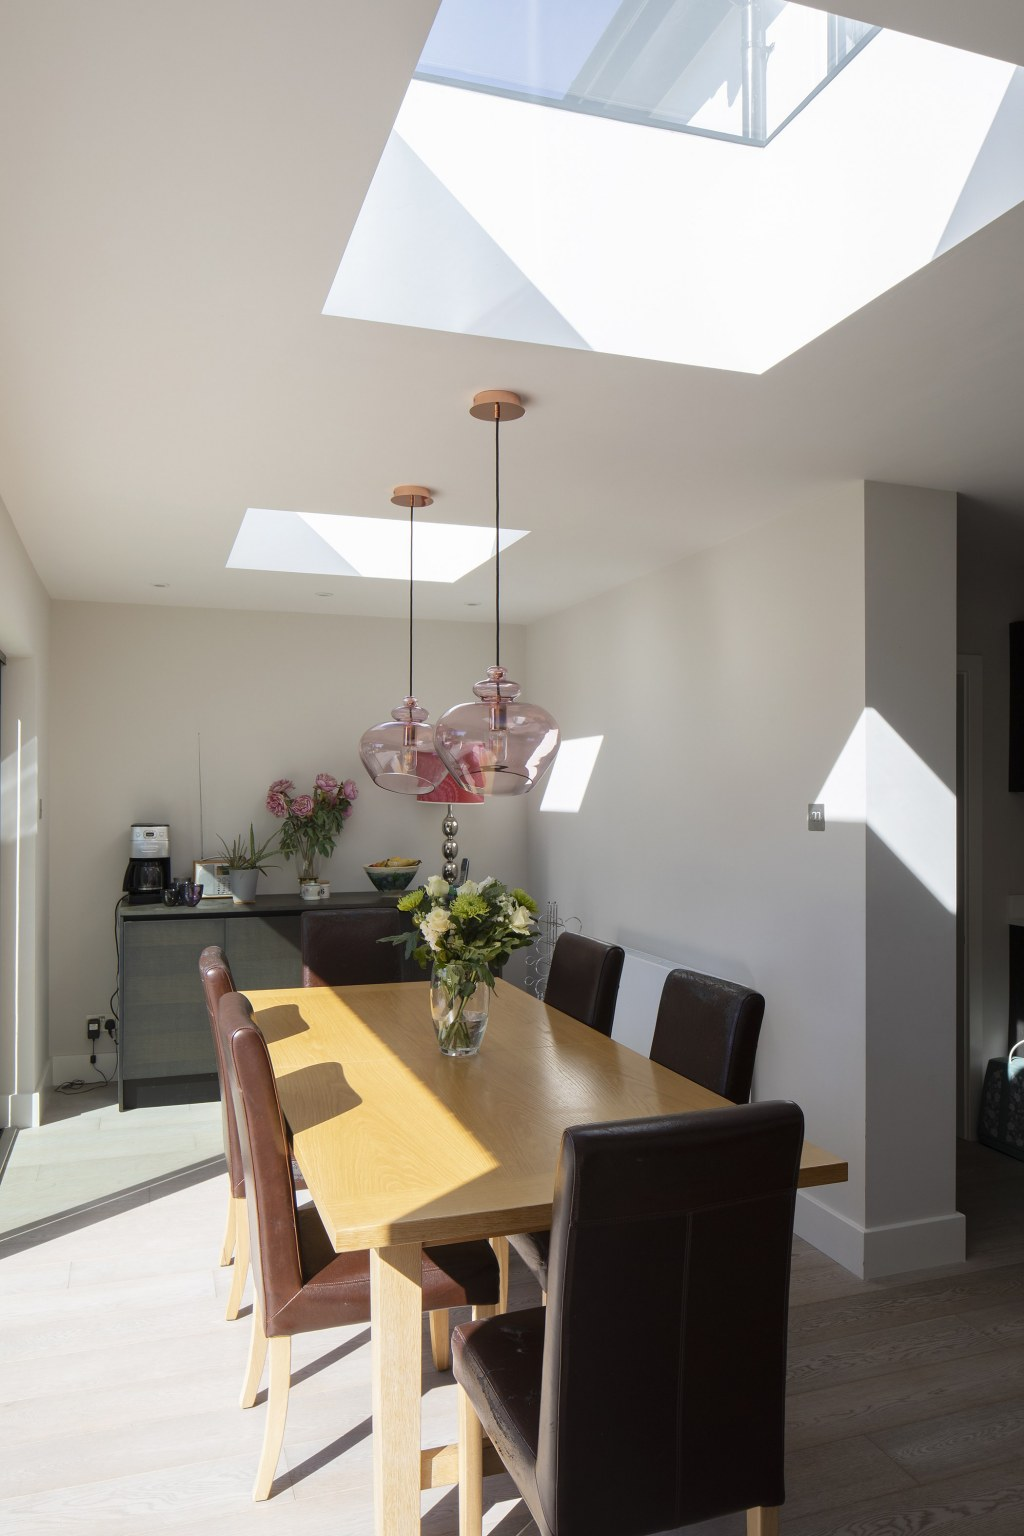 Liphook / Transformation of Semi Rural Hampshire Home 17